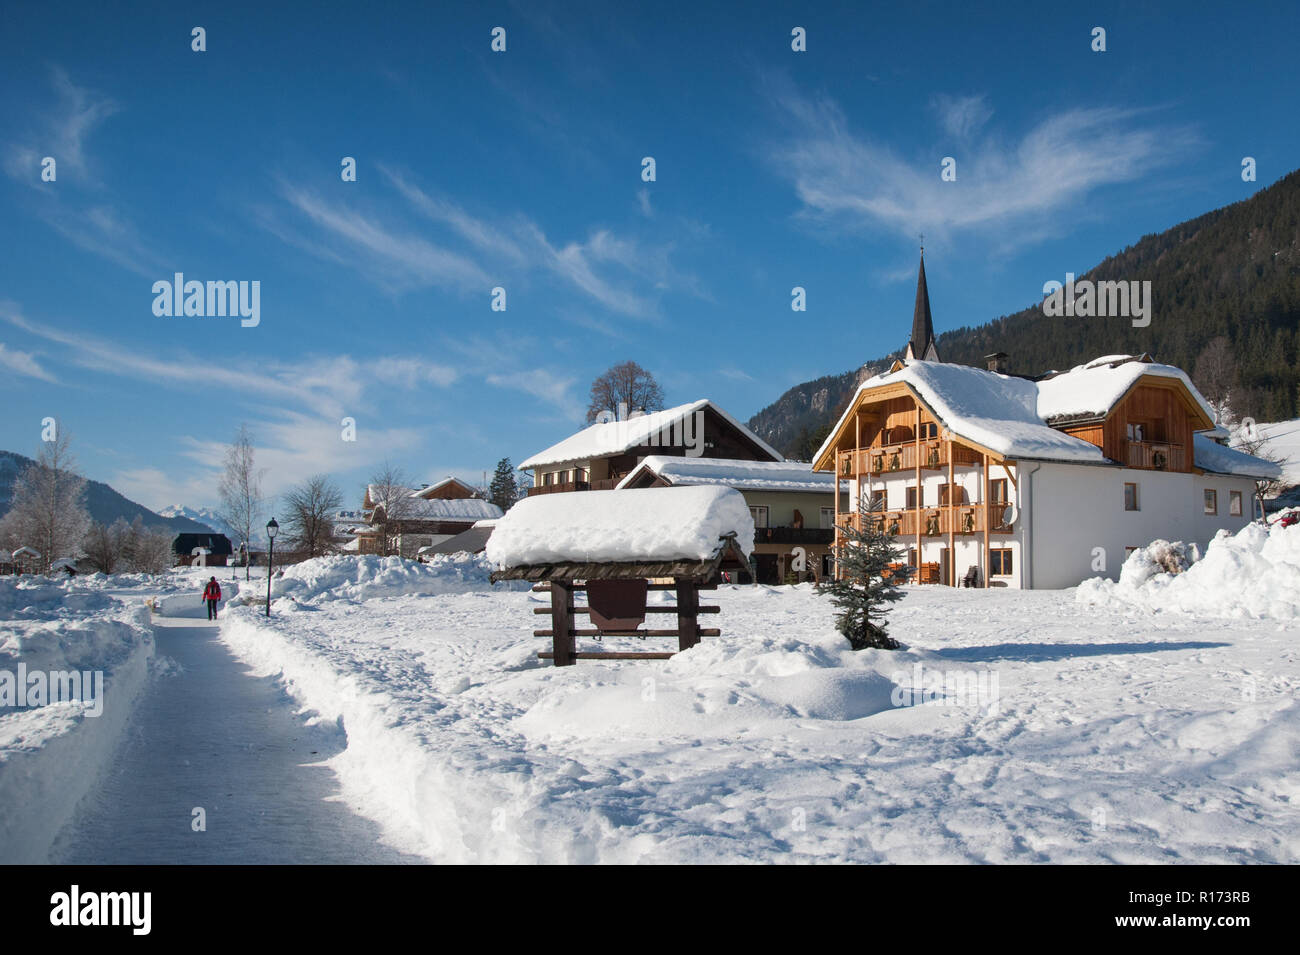 Sunny winter day. Woman walking in rural winter landscape, Weissensee, Carinthia, Austria Stock Photo